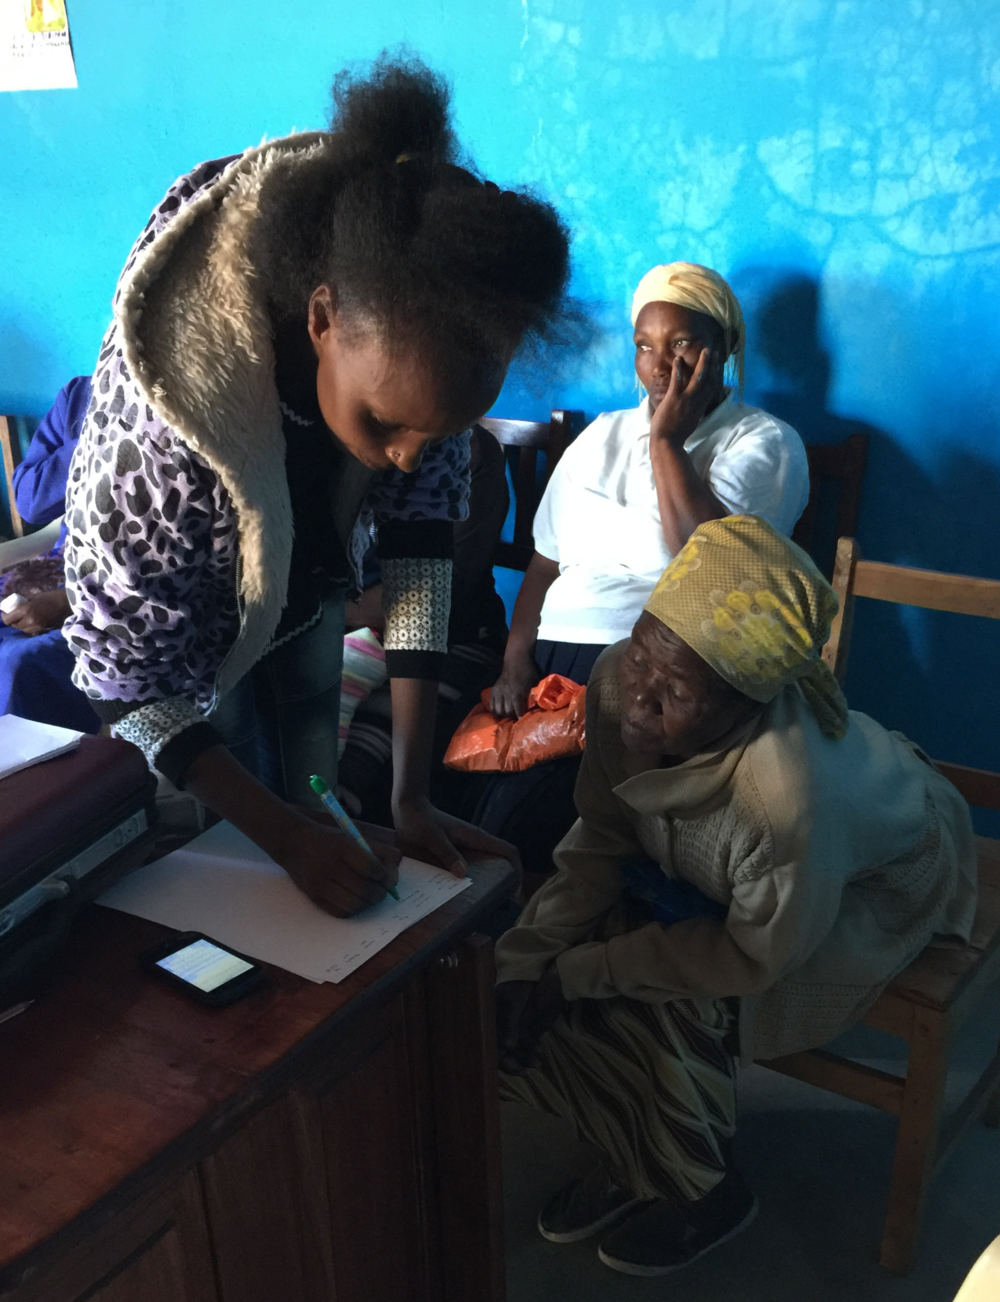 Community Health Worker Emily records the blood pressure of a patient at the outreach clinic.